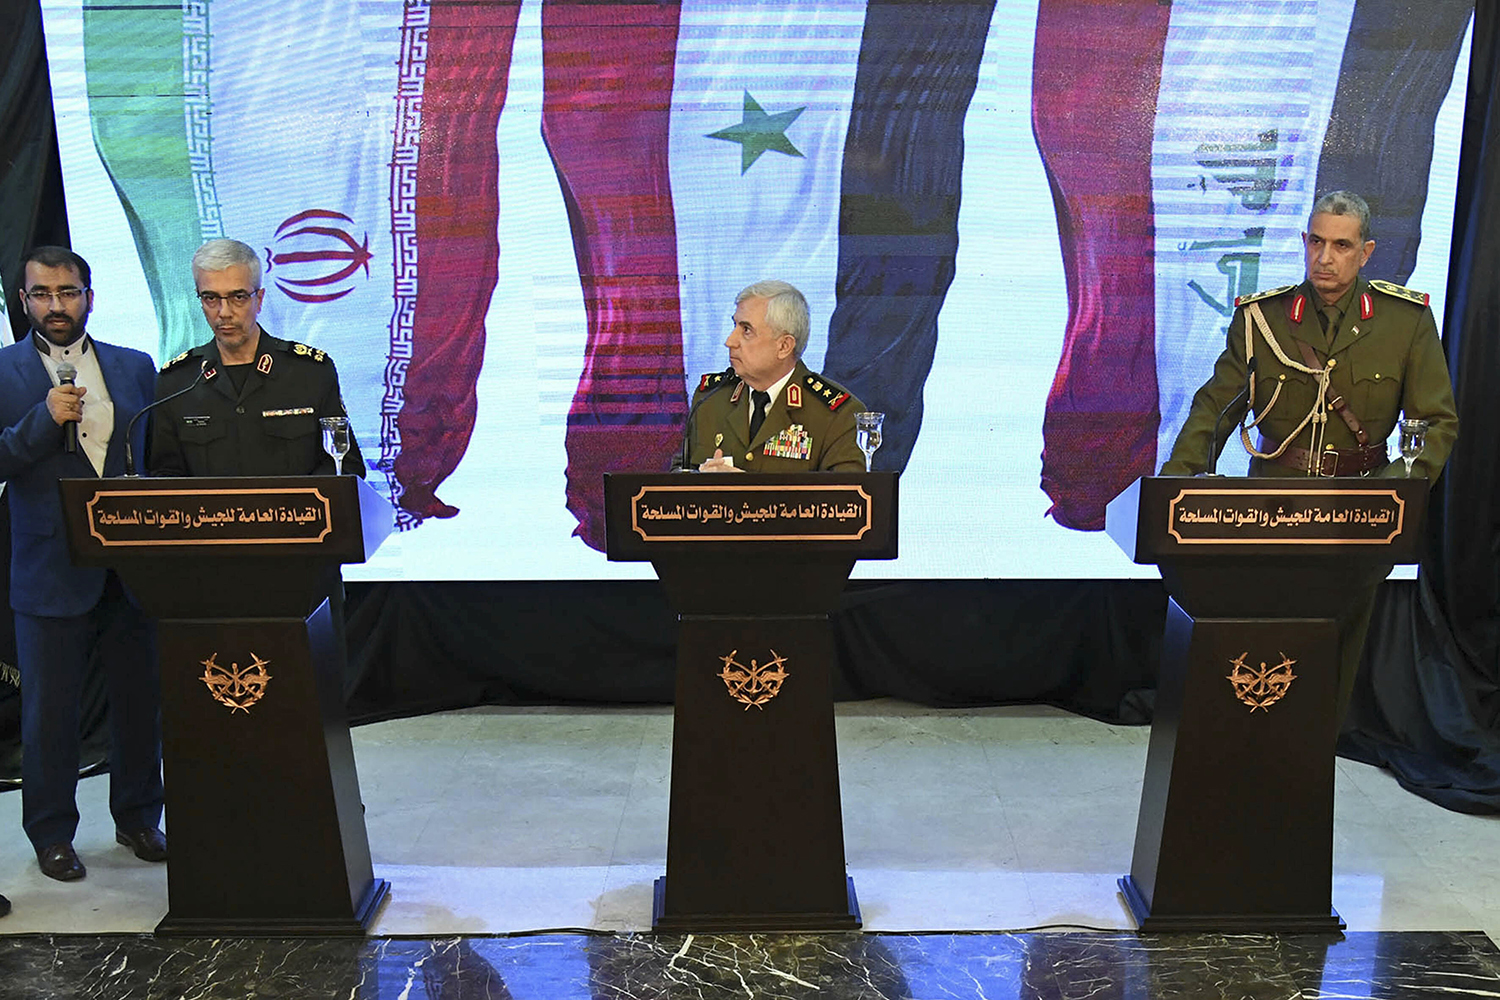 Iran's Chief of Staff of Armed Forces, Maj. Gen. Mohammad Hossein Bagheri, left, speaks during a March 18, 2019, press conference with Syria's defense minister Gen. Ali Ayoub, center, and Iraqi army commander, Gen. Osman Ghanemi in Damascus, Syria. (SANA via AP)